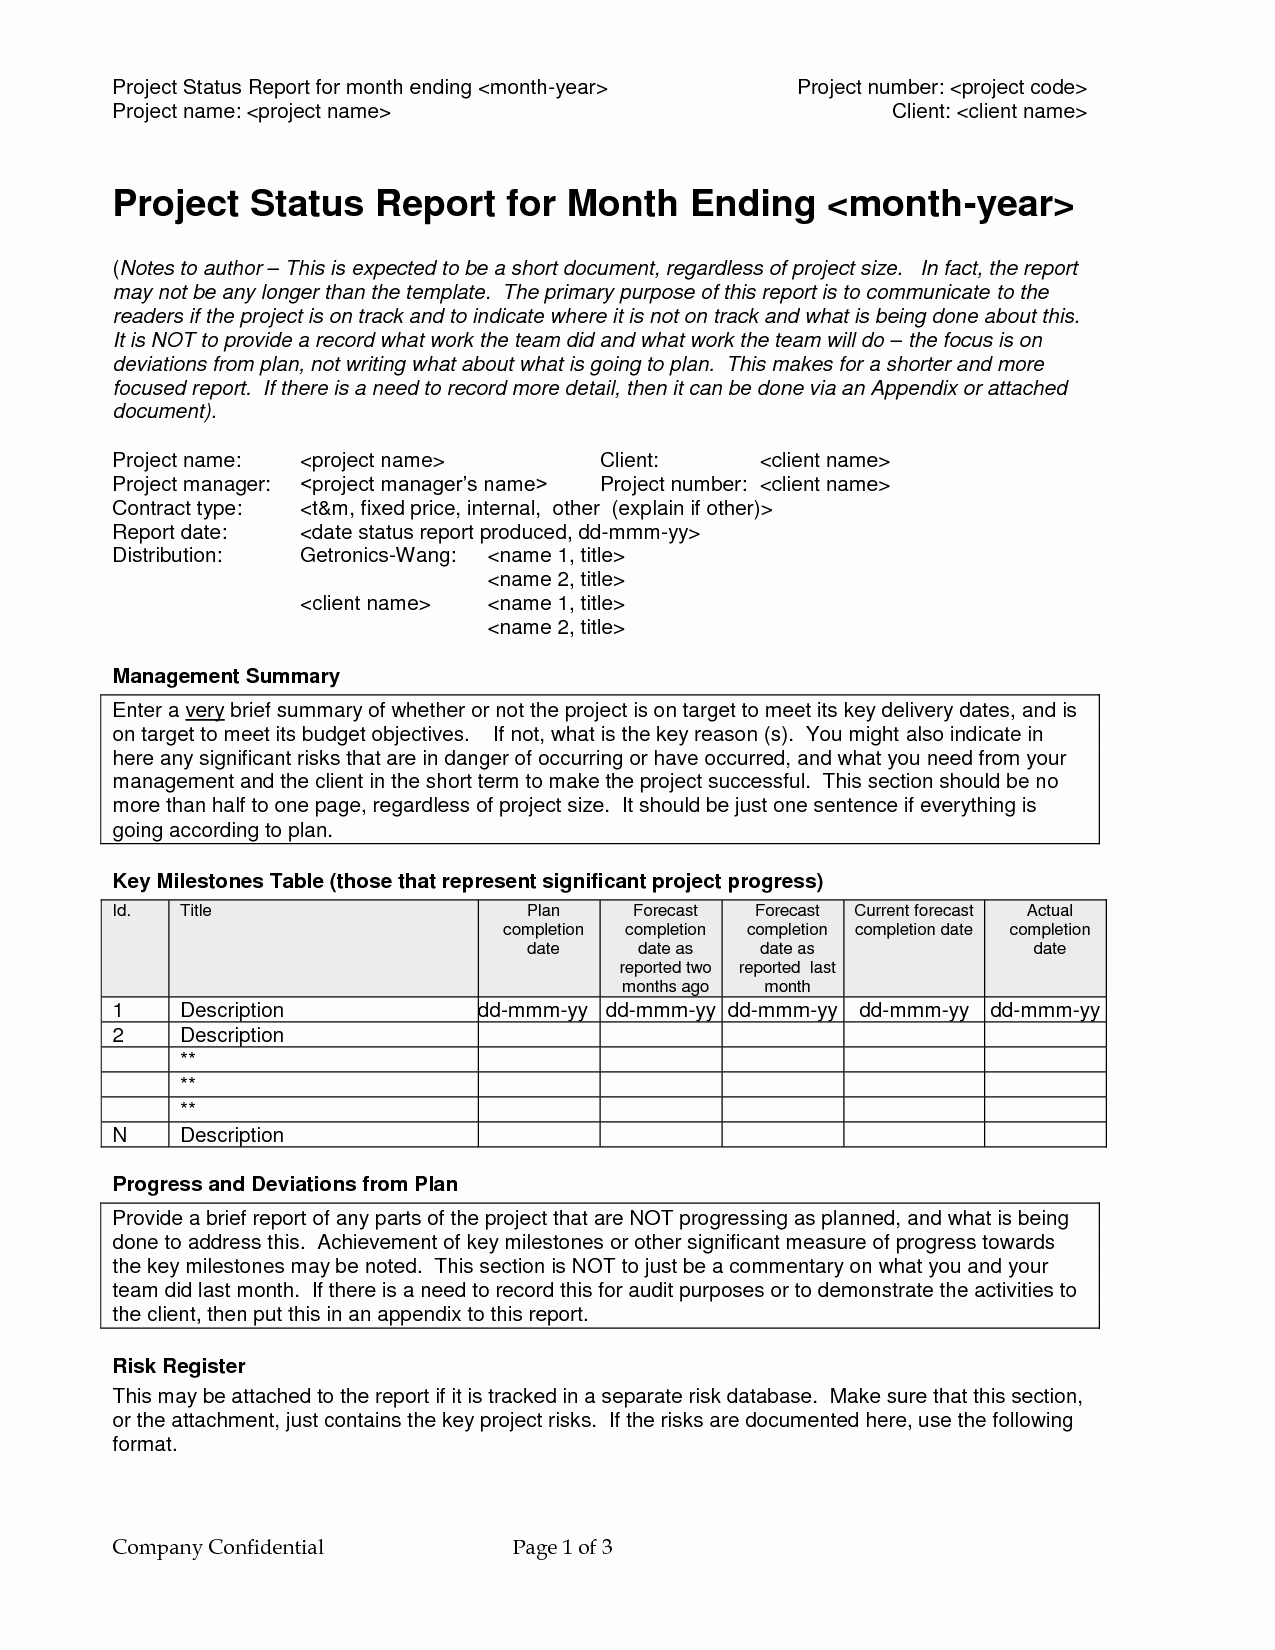 Project Weekly Status Report Template Elegant Best S Of Project Progress Report Examples Project